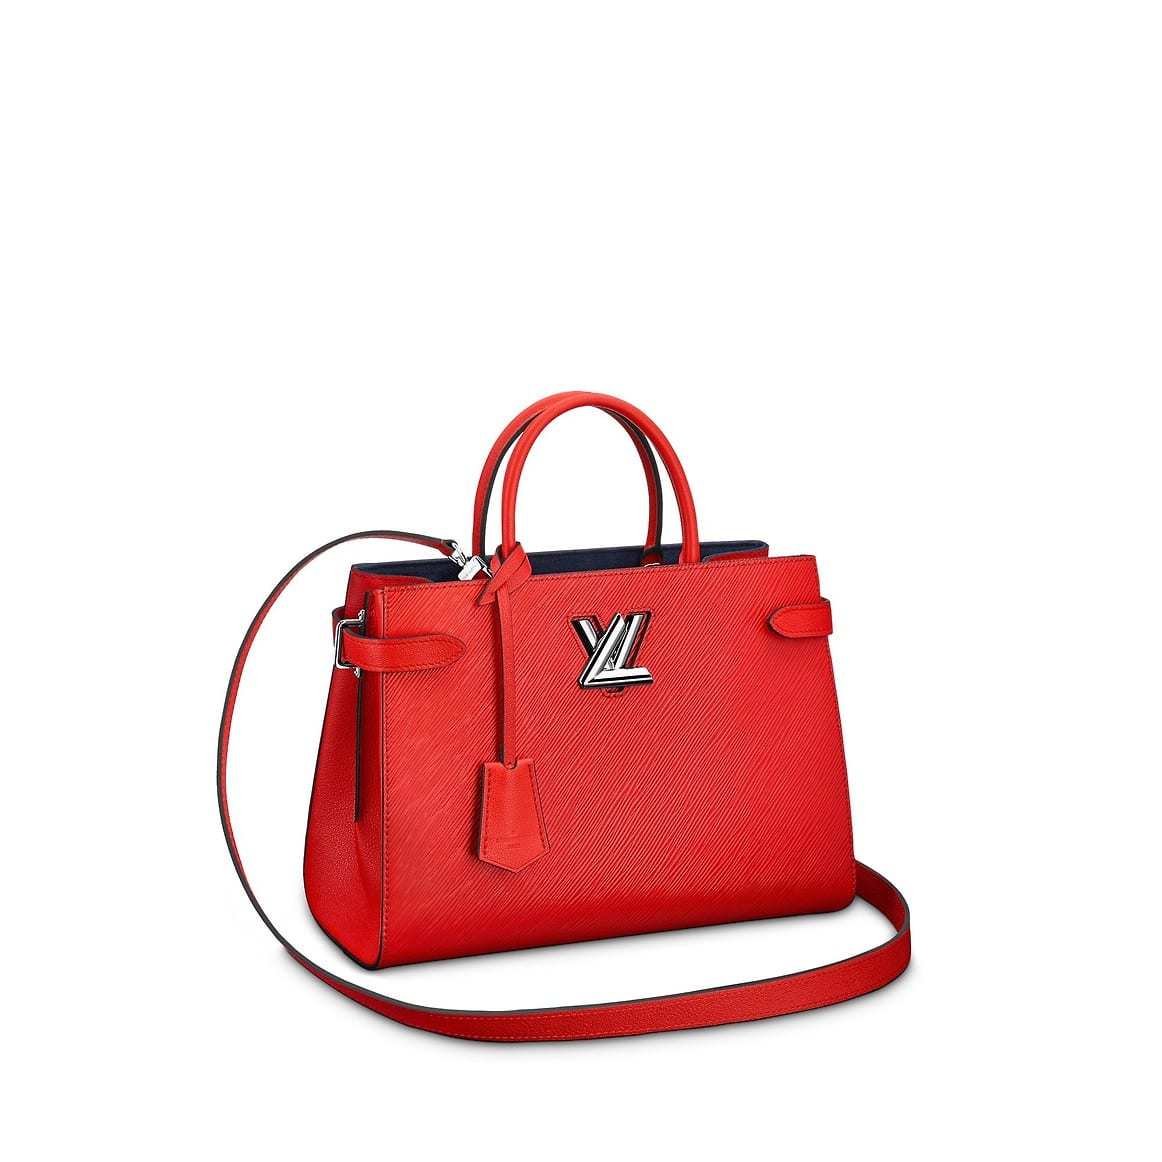 LV-product-2